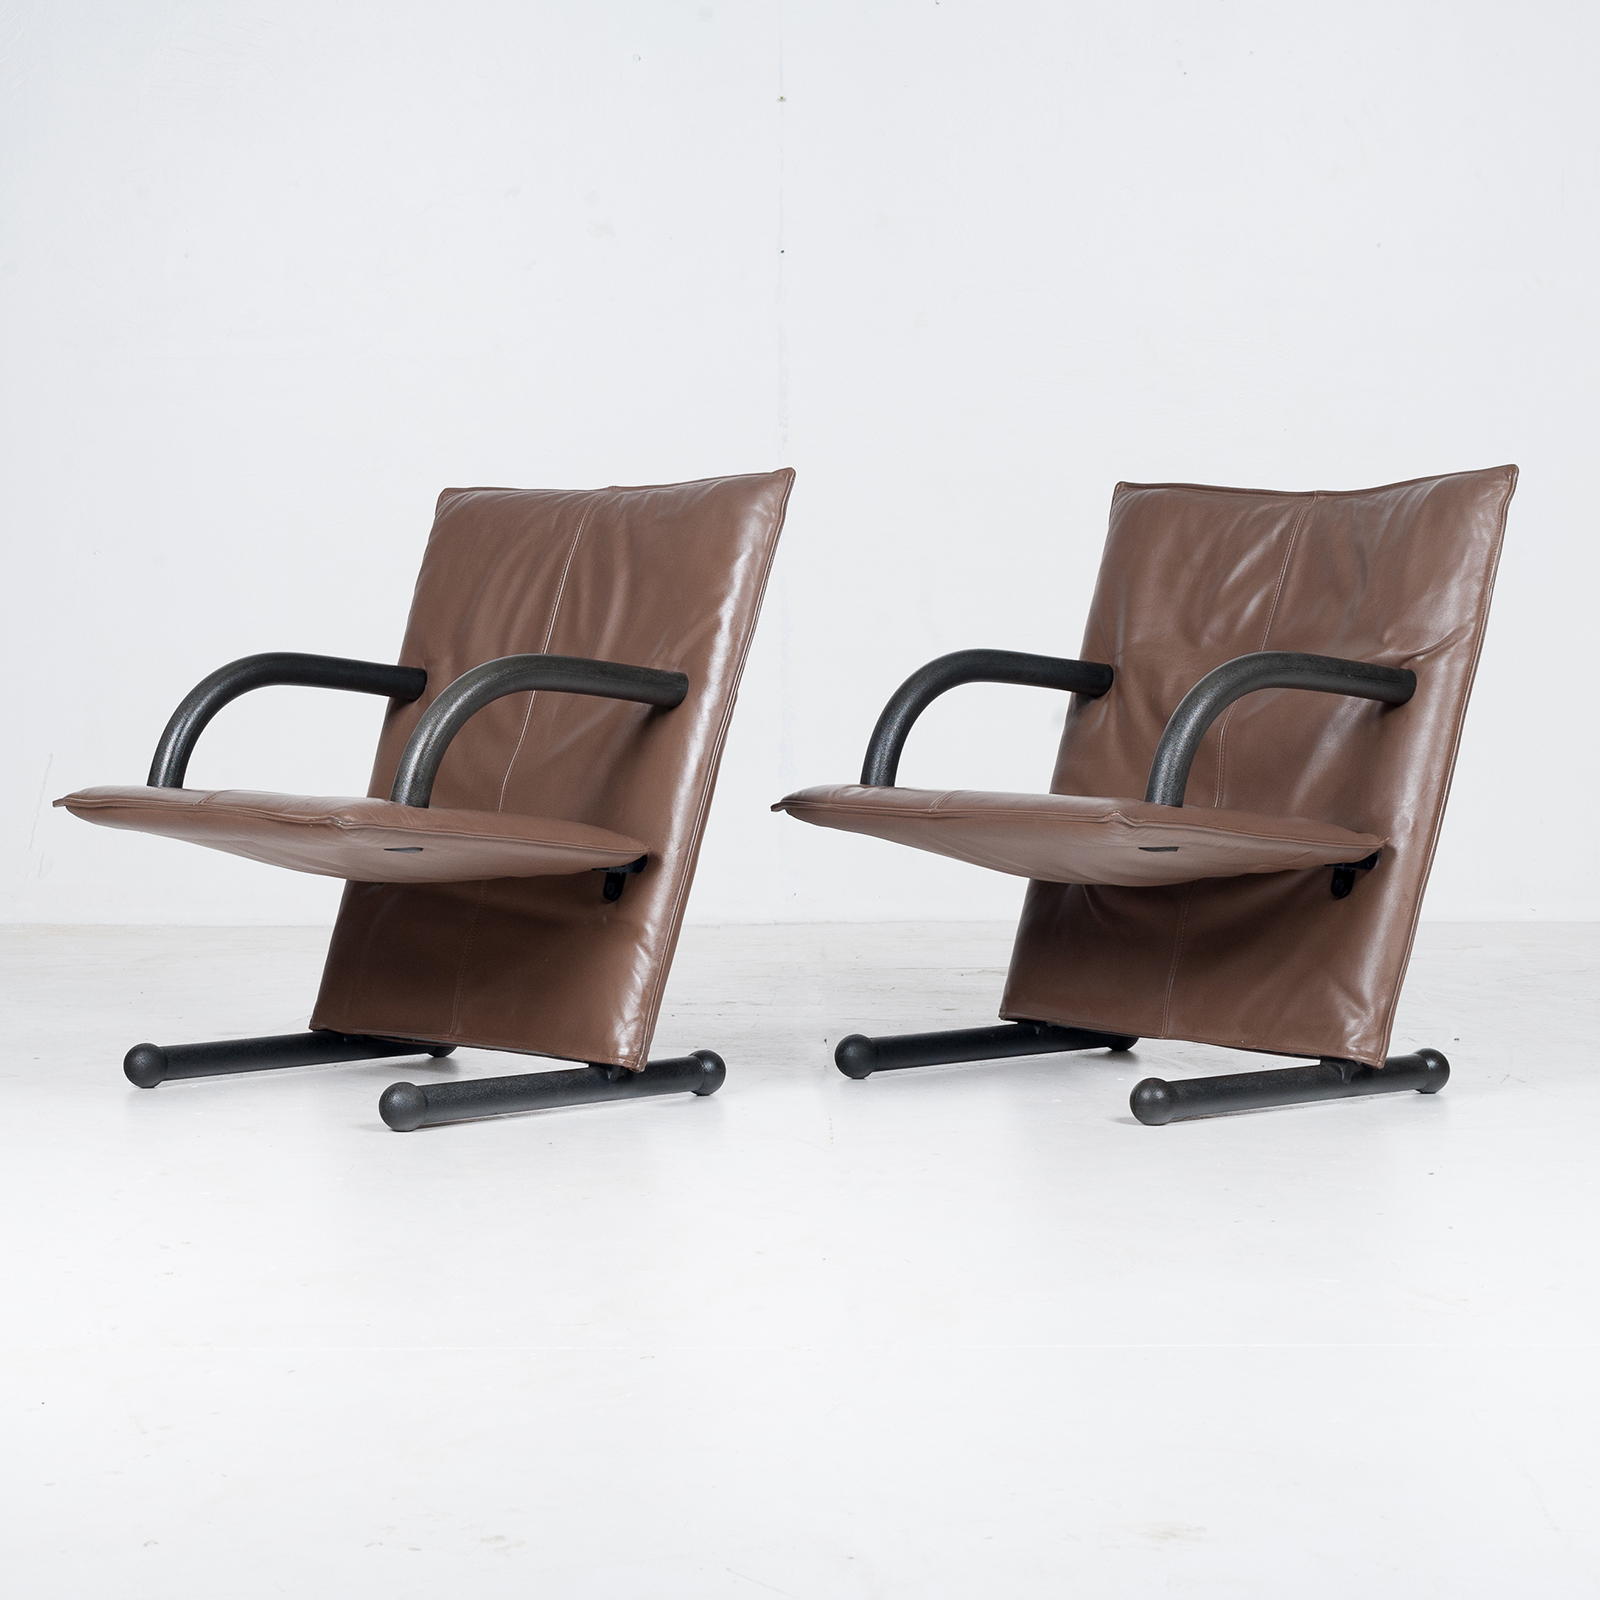 Model T Line Chair In By Burkhard Vogtherr For Arflex In Brown Leather, 1980s, Italy73